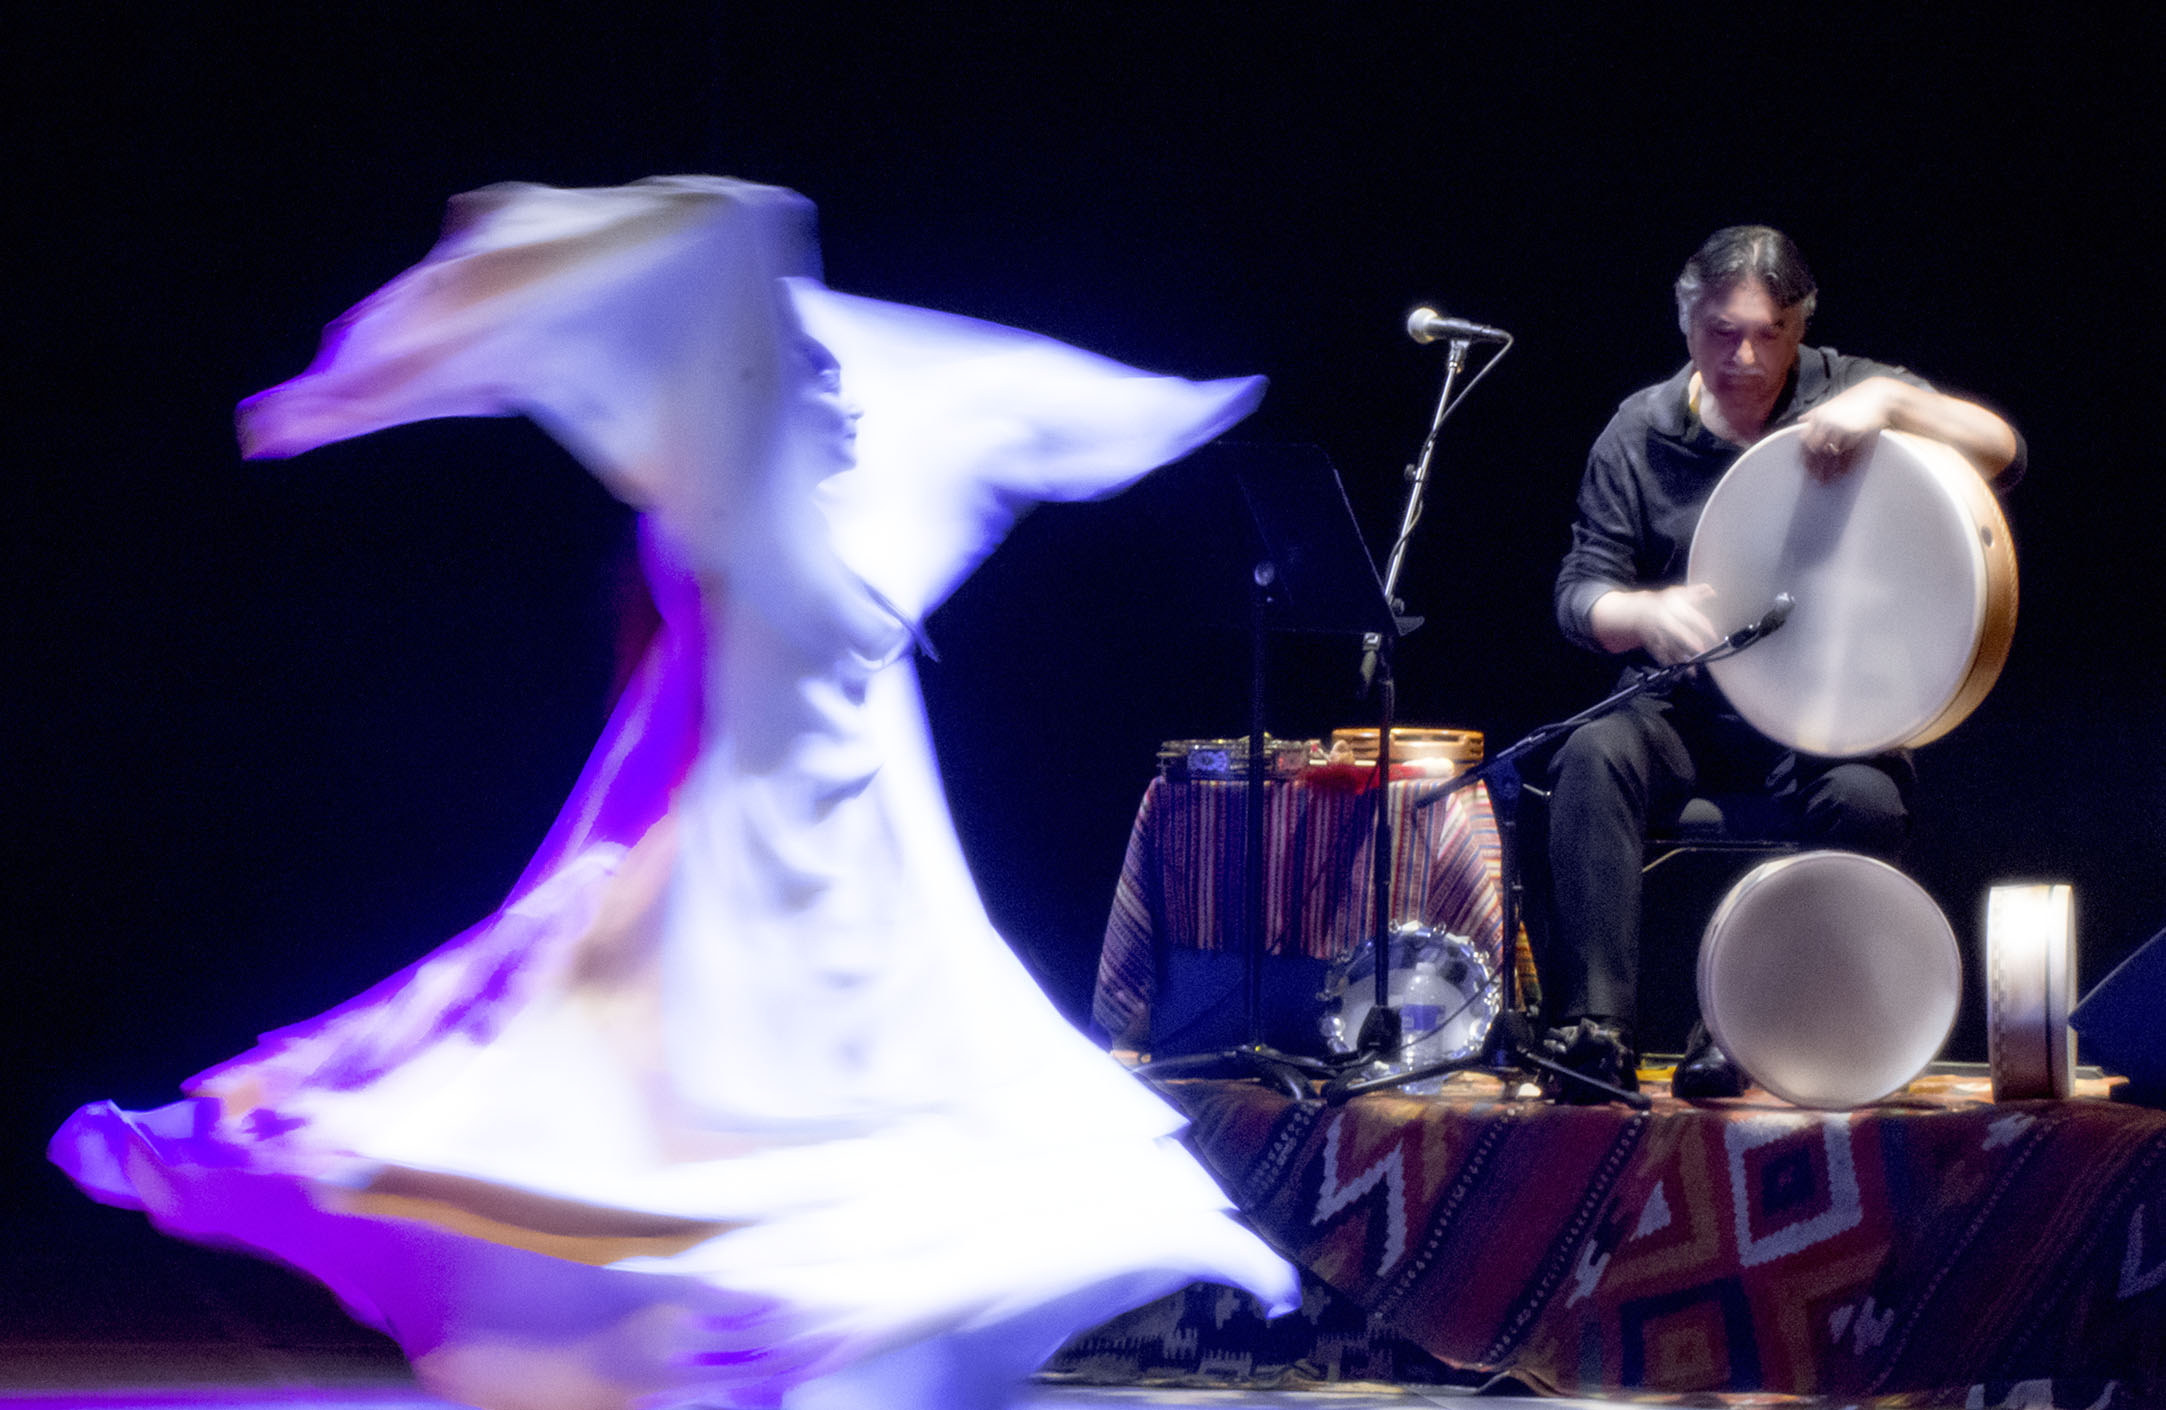 Rumi Concert - Zuleikha whirling with Glen Velez on frame drum